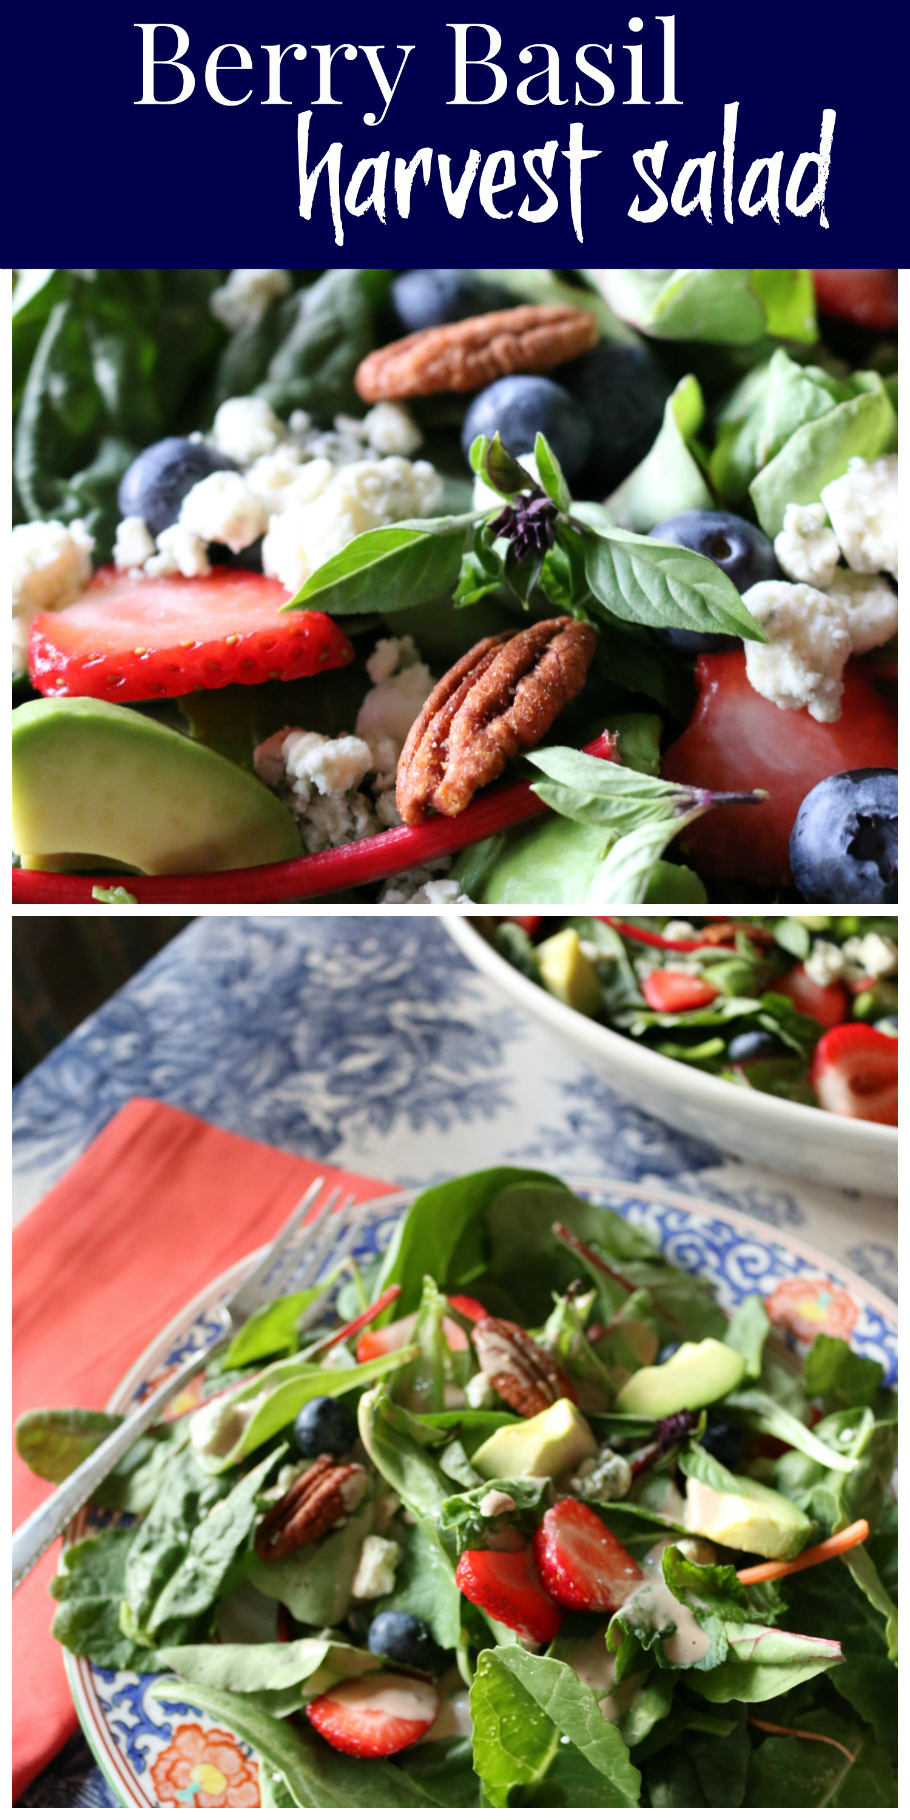 Berry Basil Harvest Salad | CeceliasGoodStuff.com | Good Food for Good People